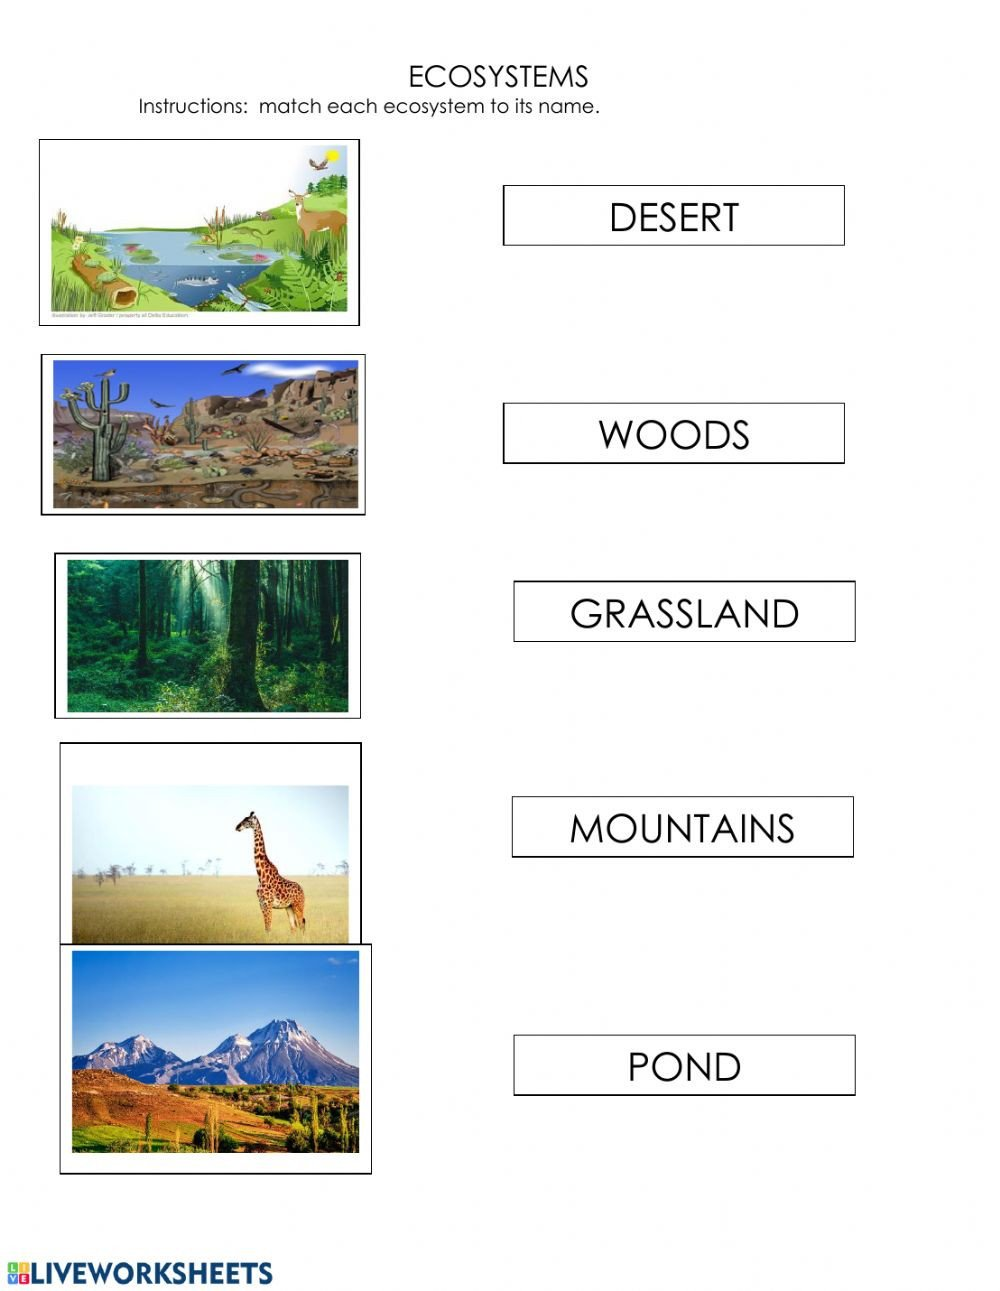 Ecosystems Interactive worksheet